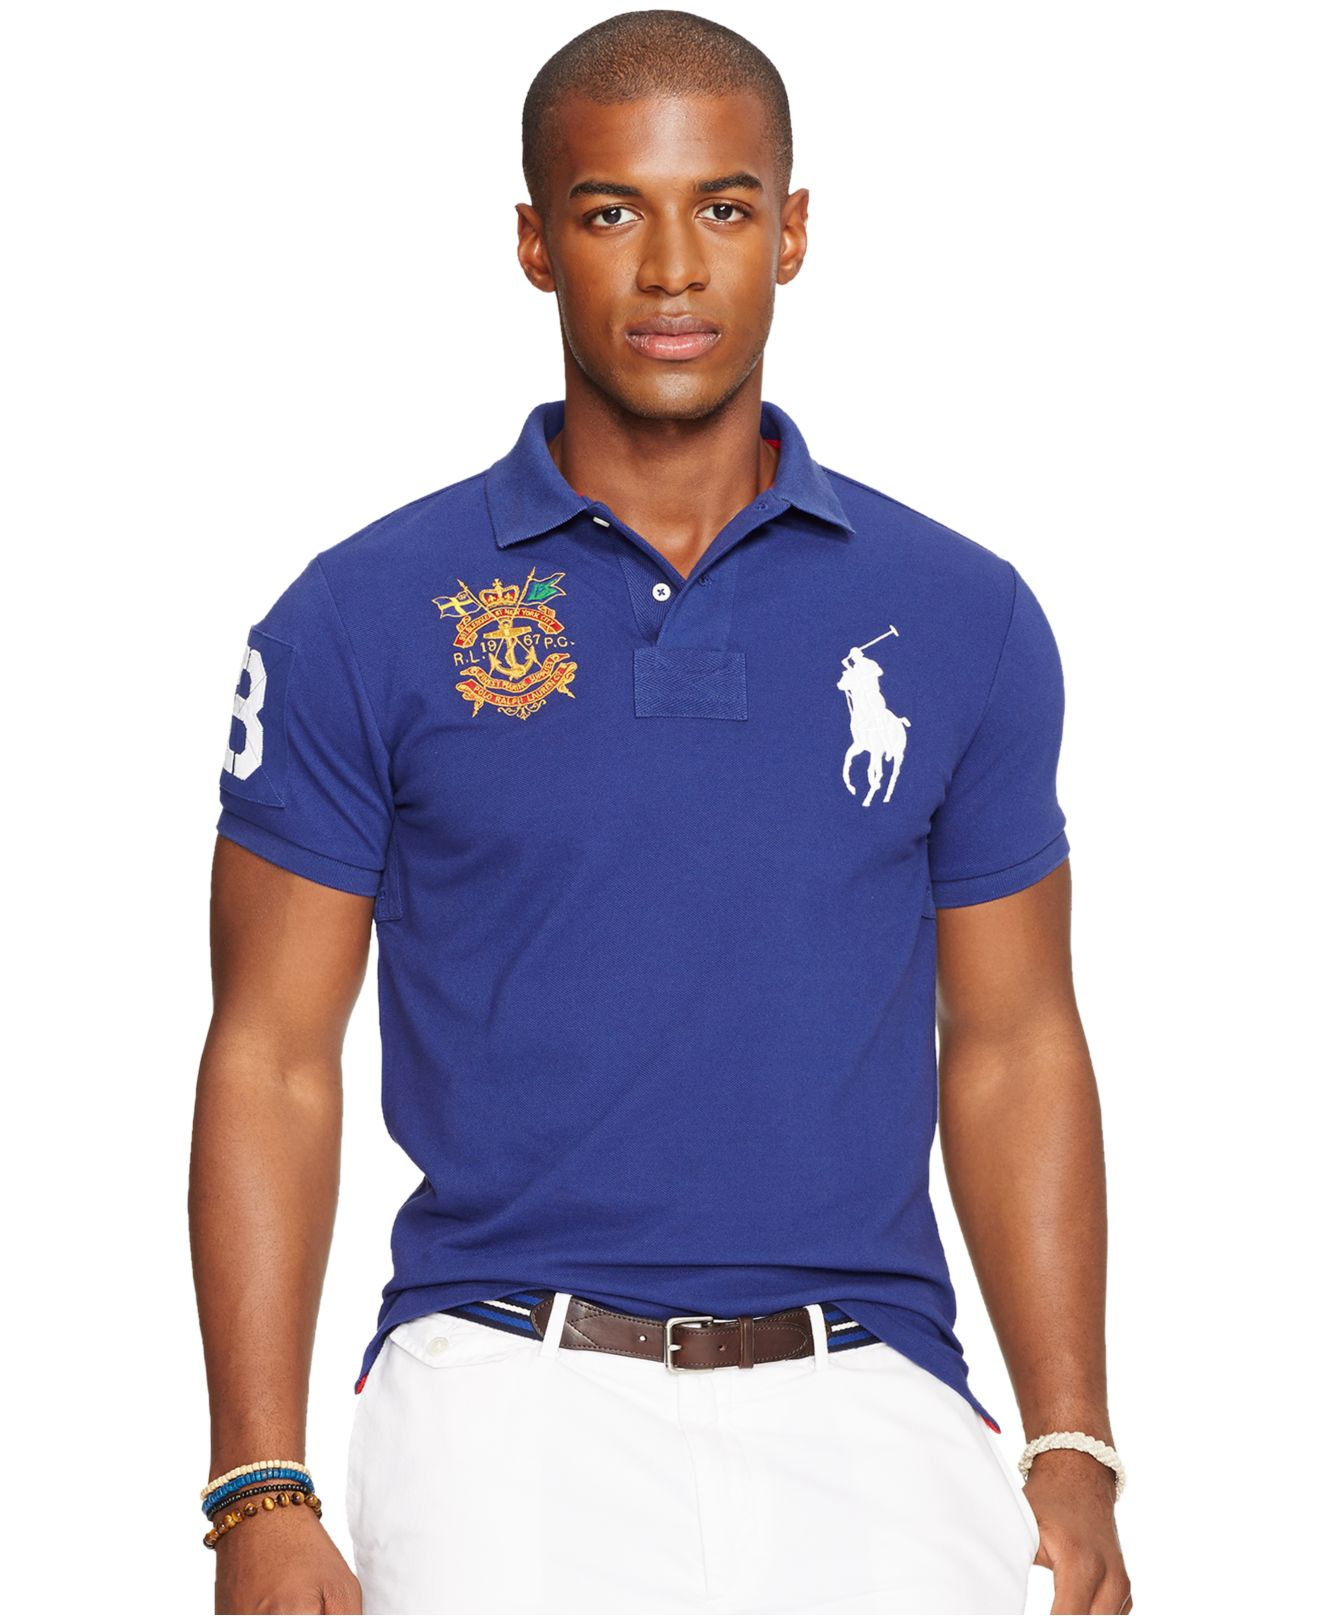 Polo ralph lauren Custom-Fit Big Pony Mesh Polo Shirt in Blue for Men (Yale Blue) | Lyst